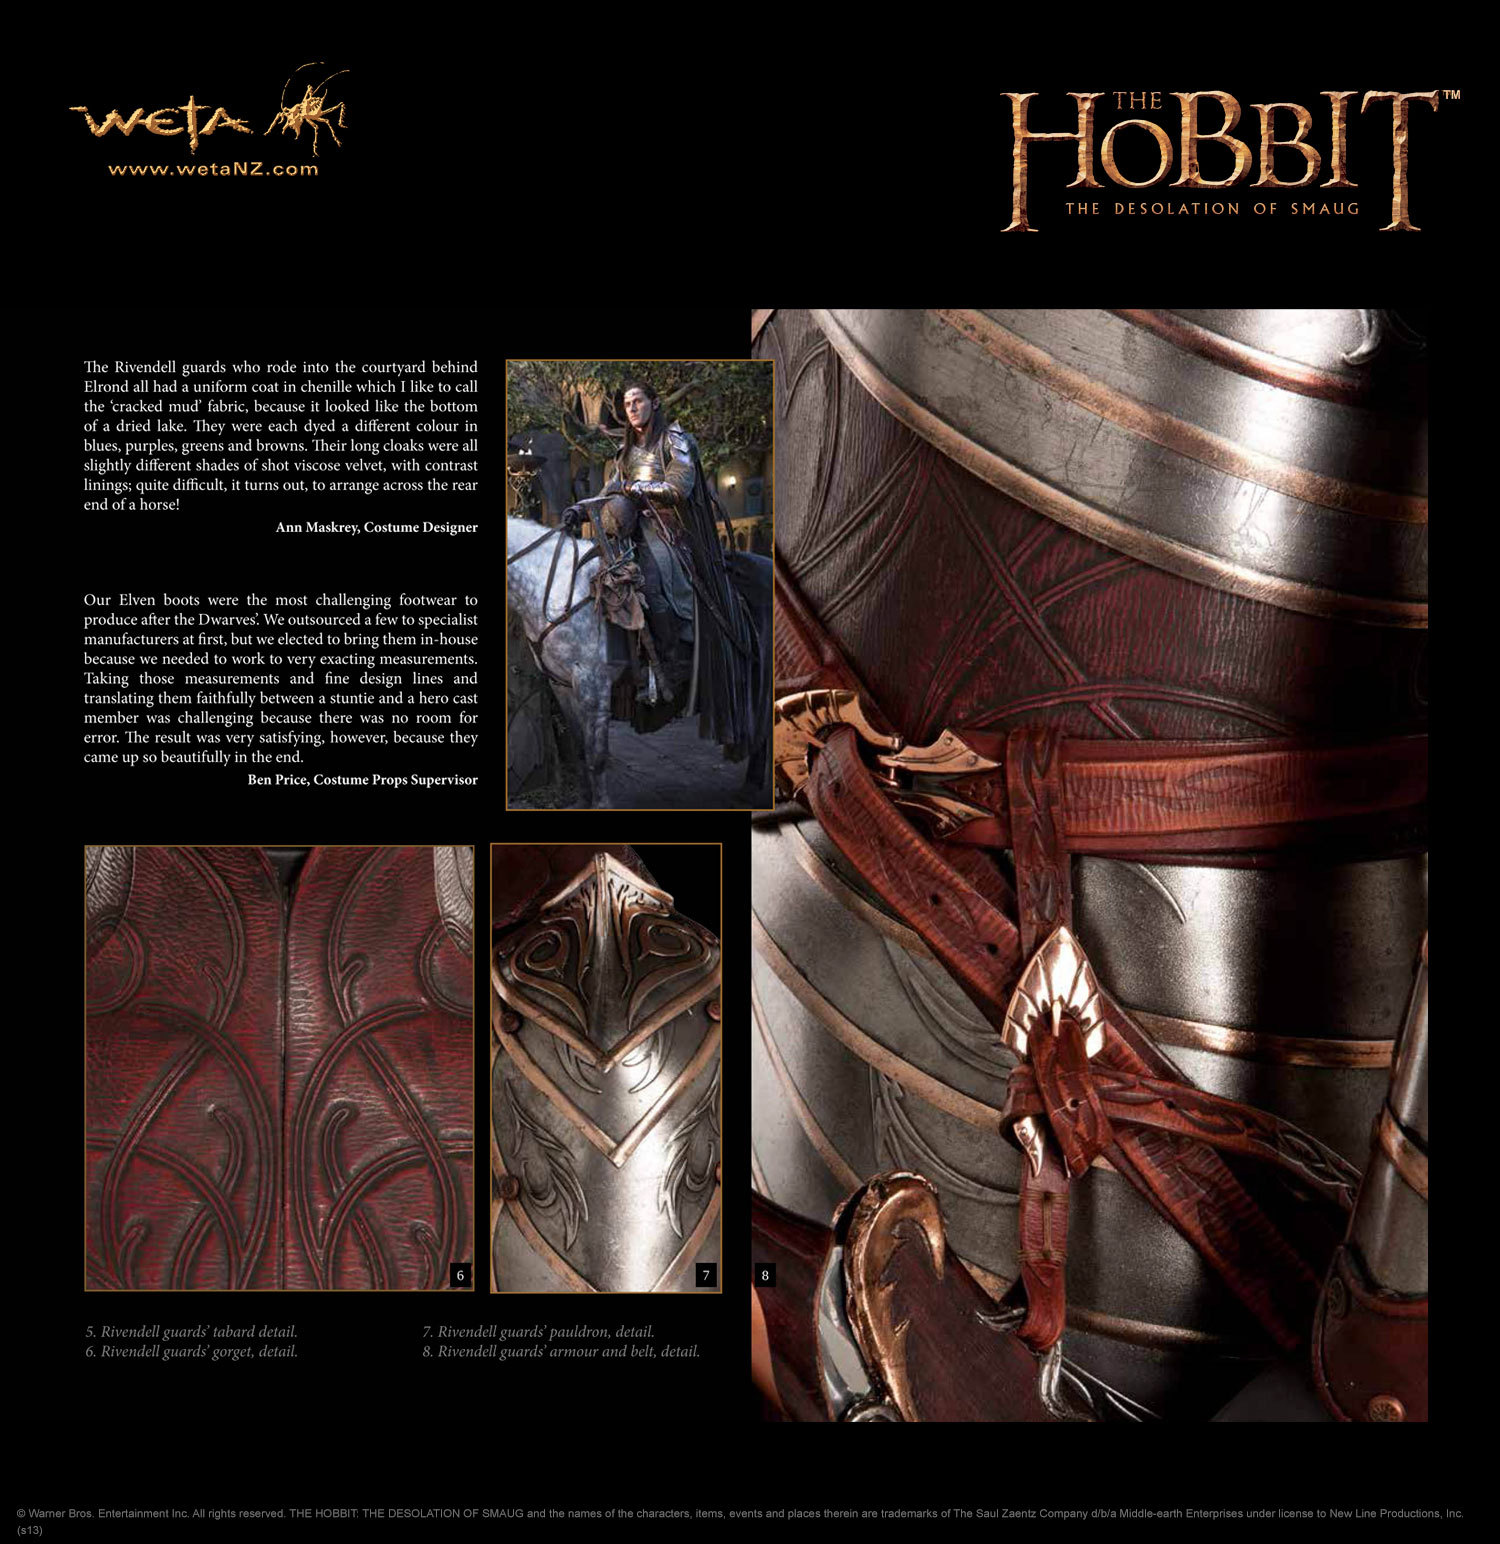 The Hobbit Desolation of Smaug Chronicles: Cloaks & Daggers by Weta image